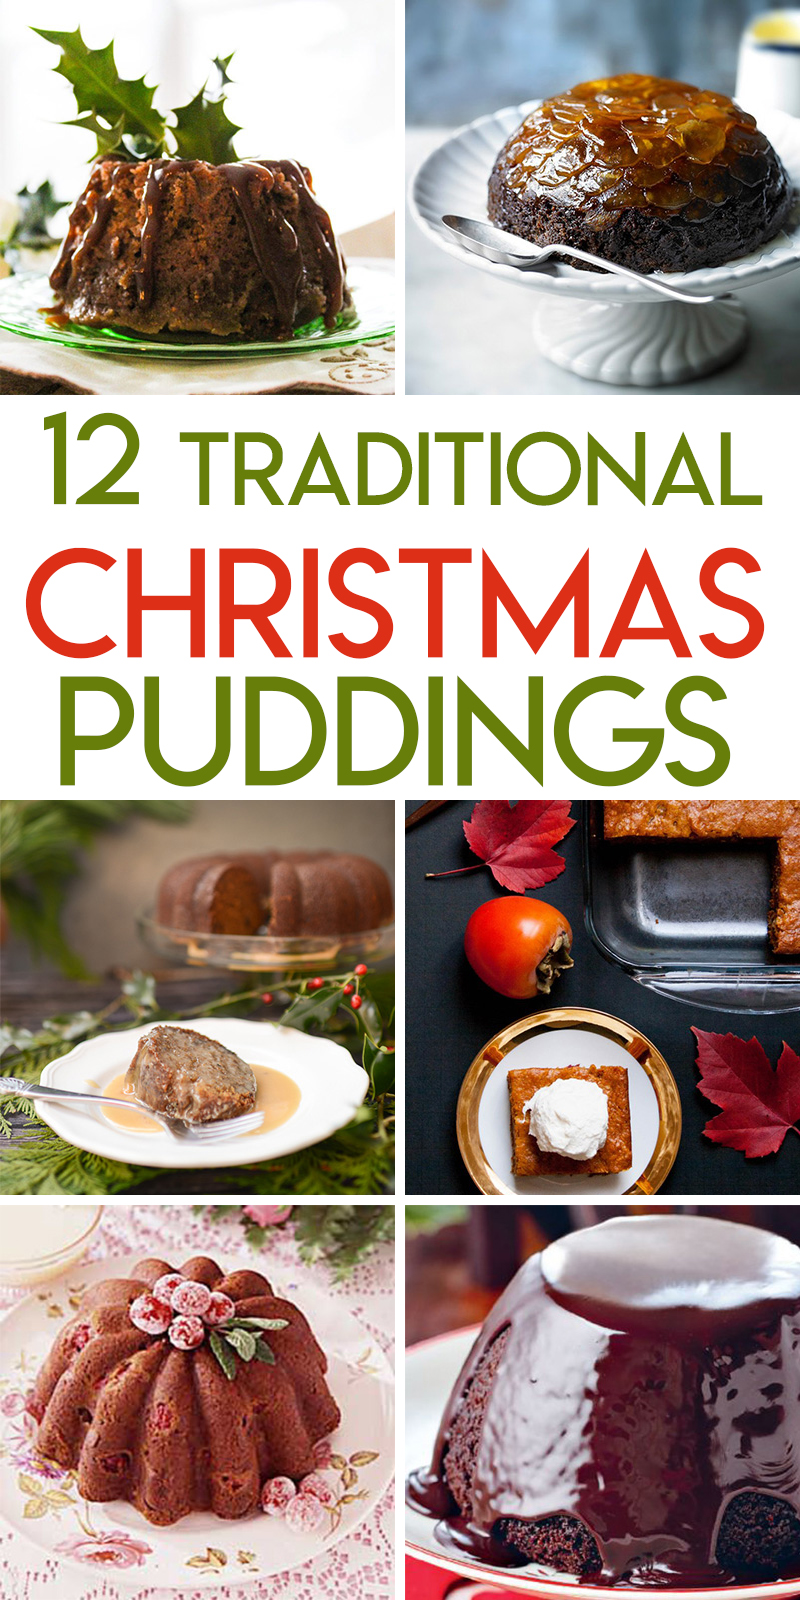 12 traditional steamed Christmas pudding recipes